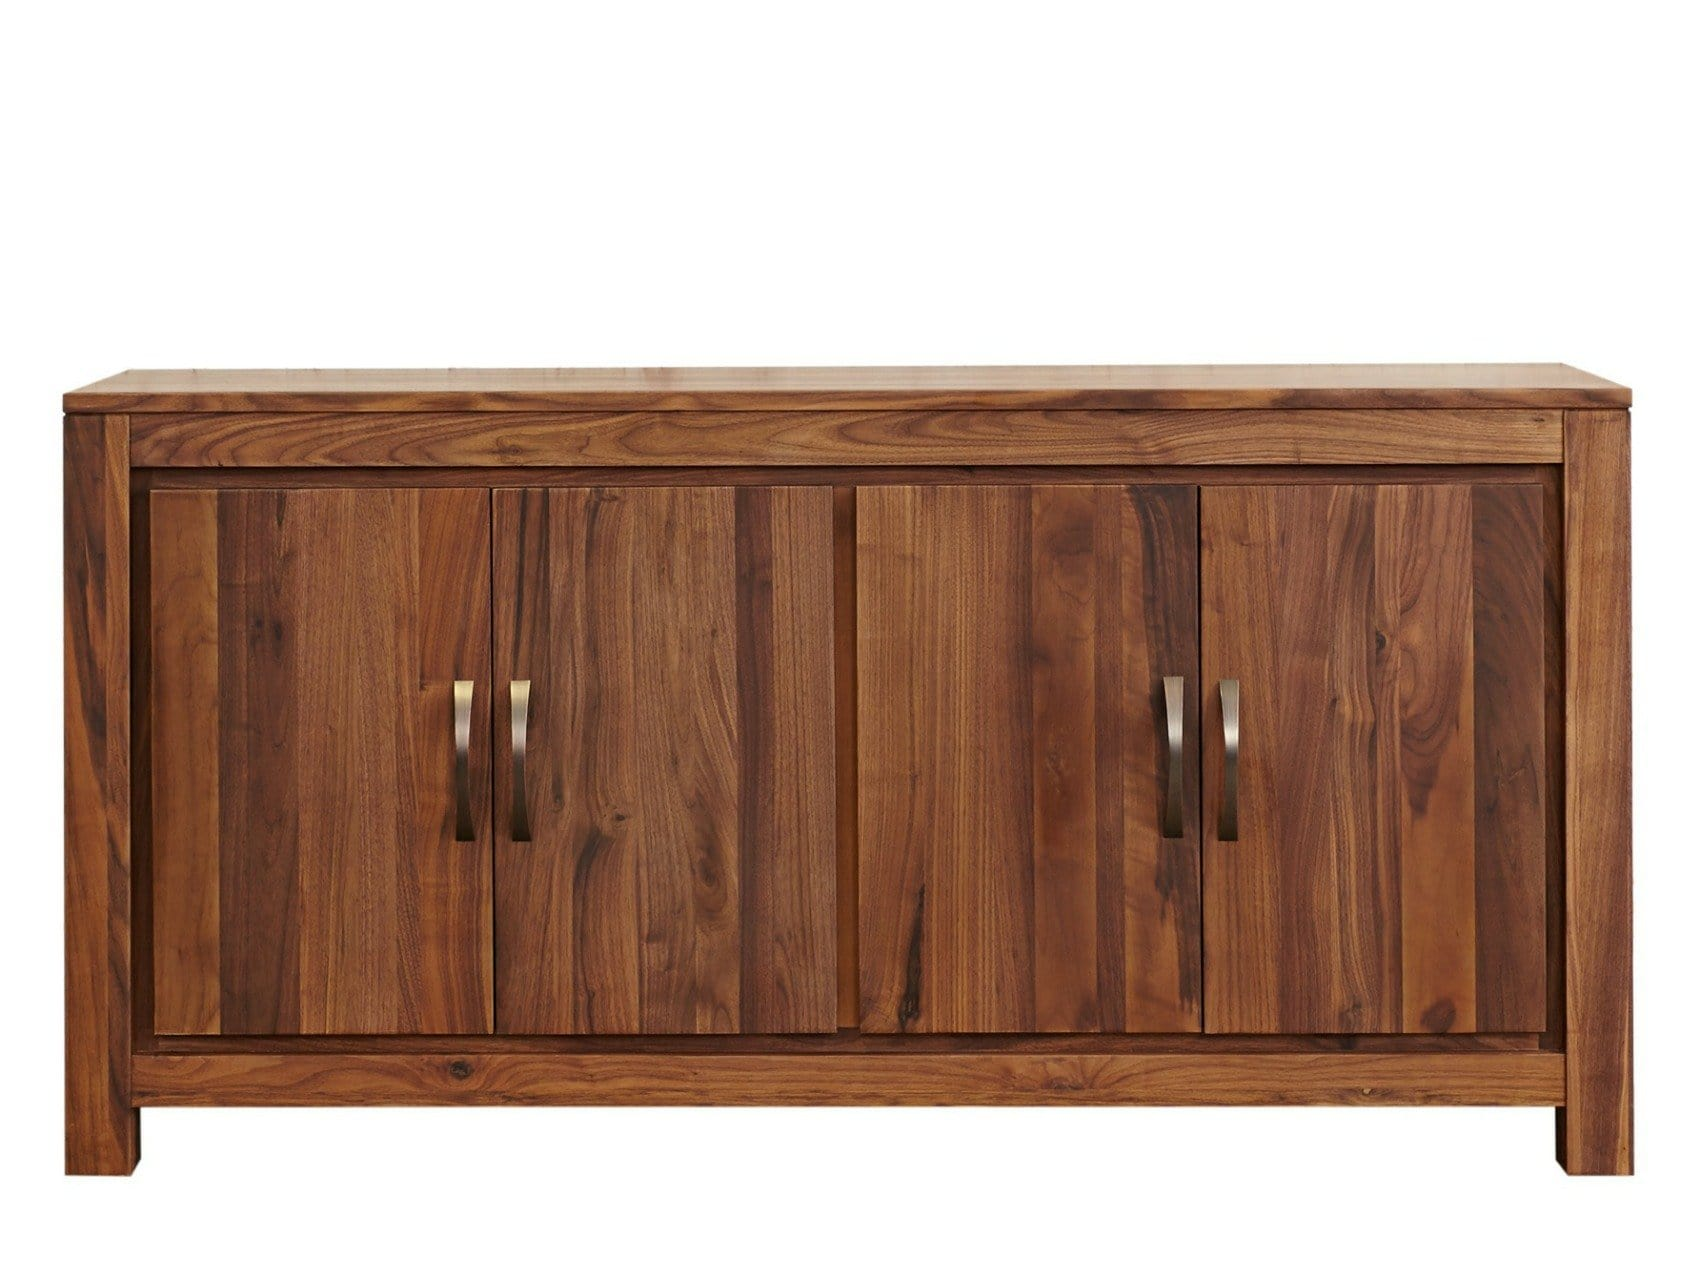 Large dark wood sideboard with two double doors and cupboards